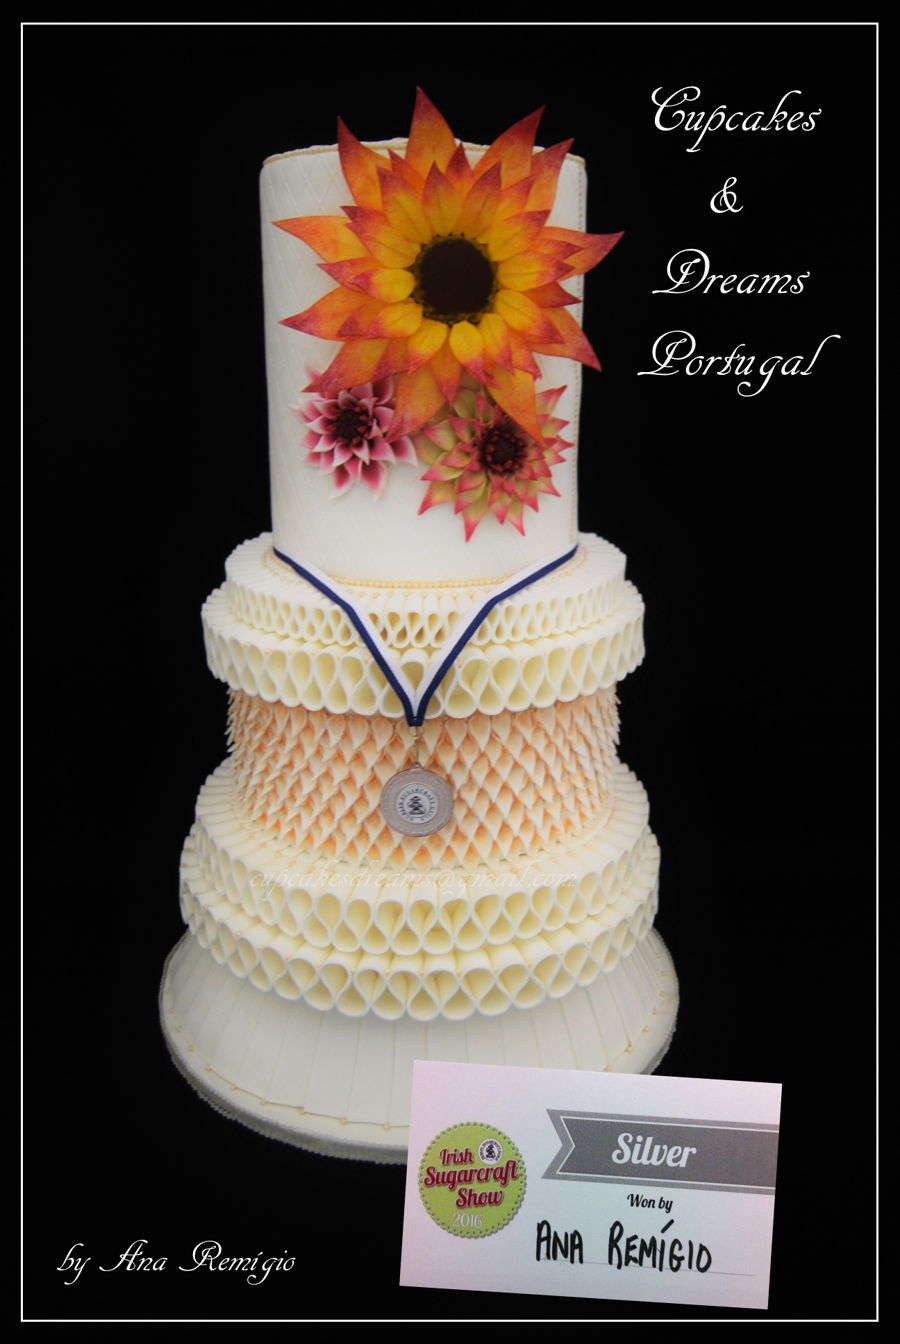 Irish Cake Decorating And Sugarcraft Chat : Dublin Wedding Cake - Irish Sugarcraft Show Competition ...